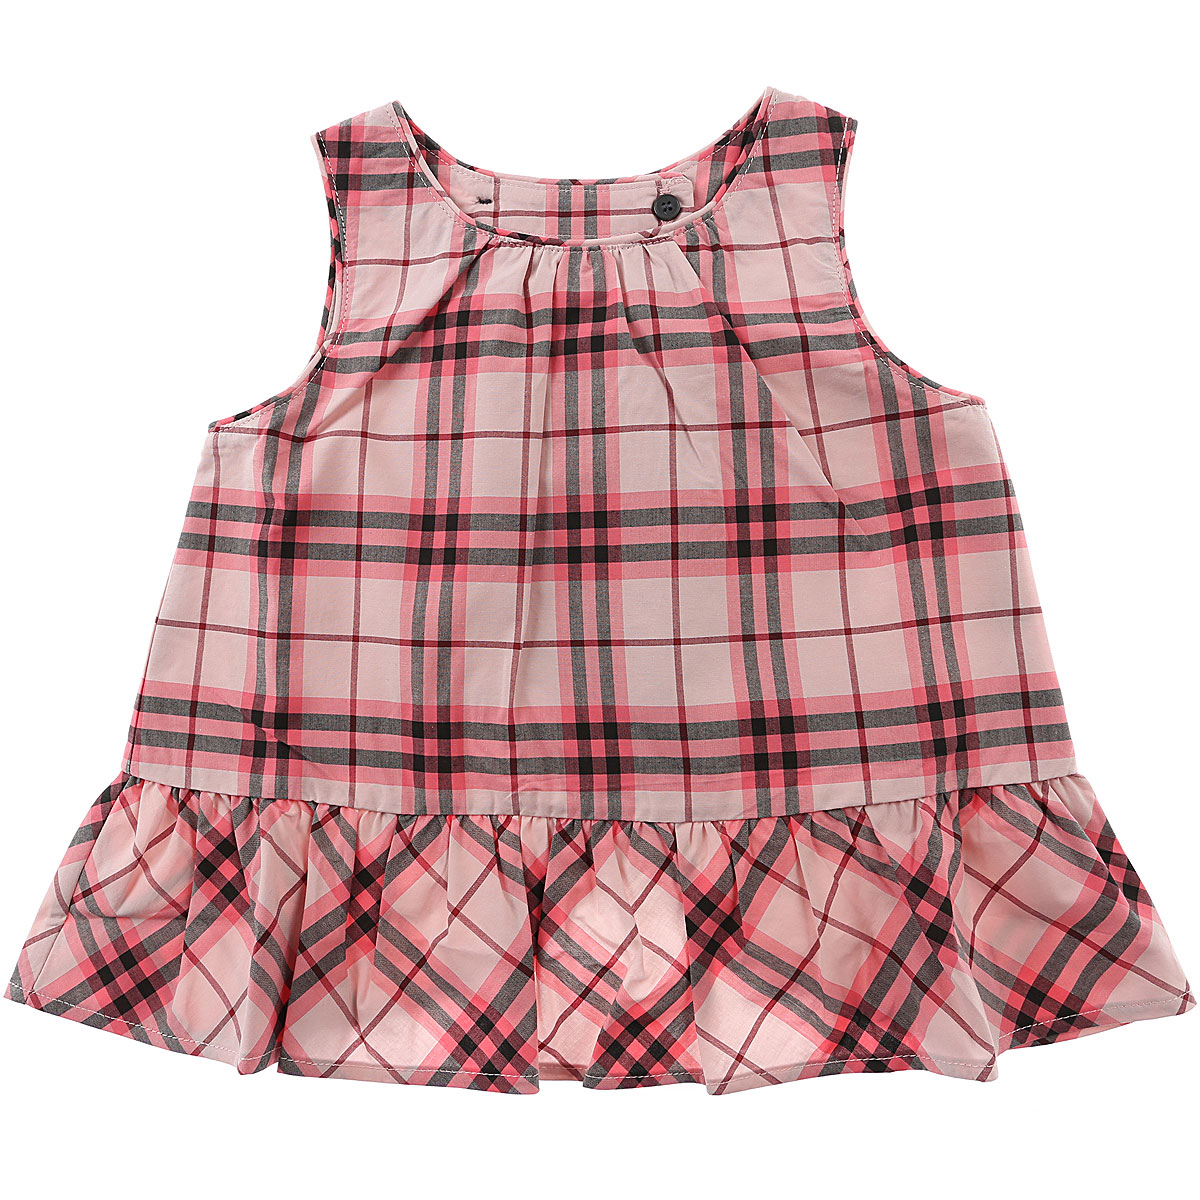 Burberry Baby Dress for Girls On Sale in Outlet, Bright Rose, Cotton, 2019, 12M 2Y